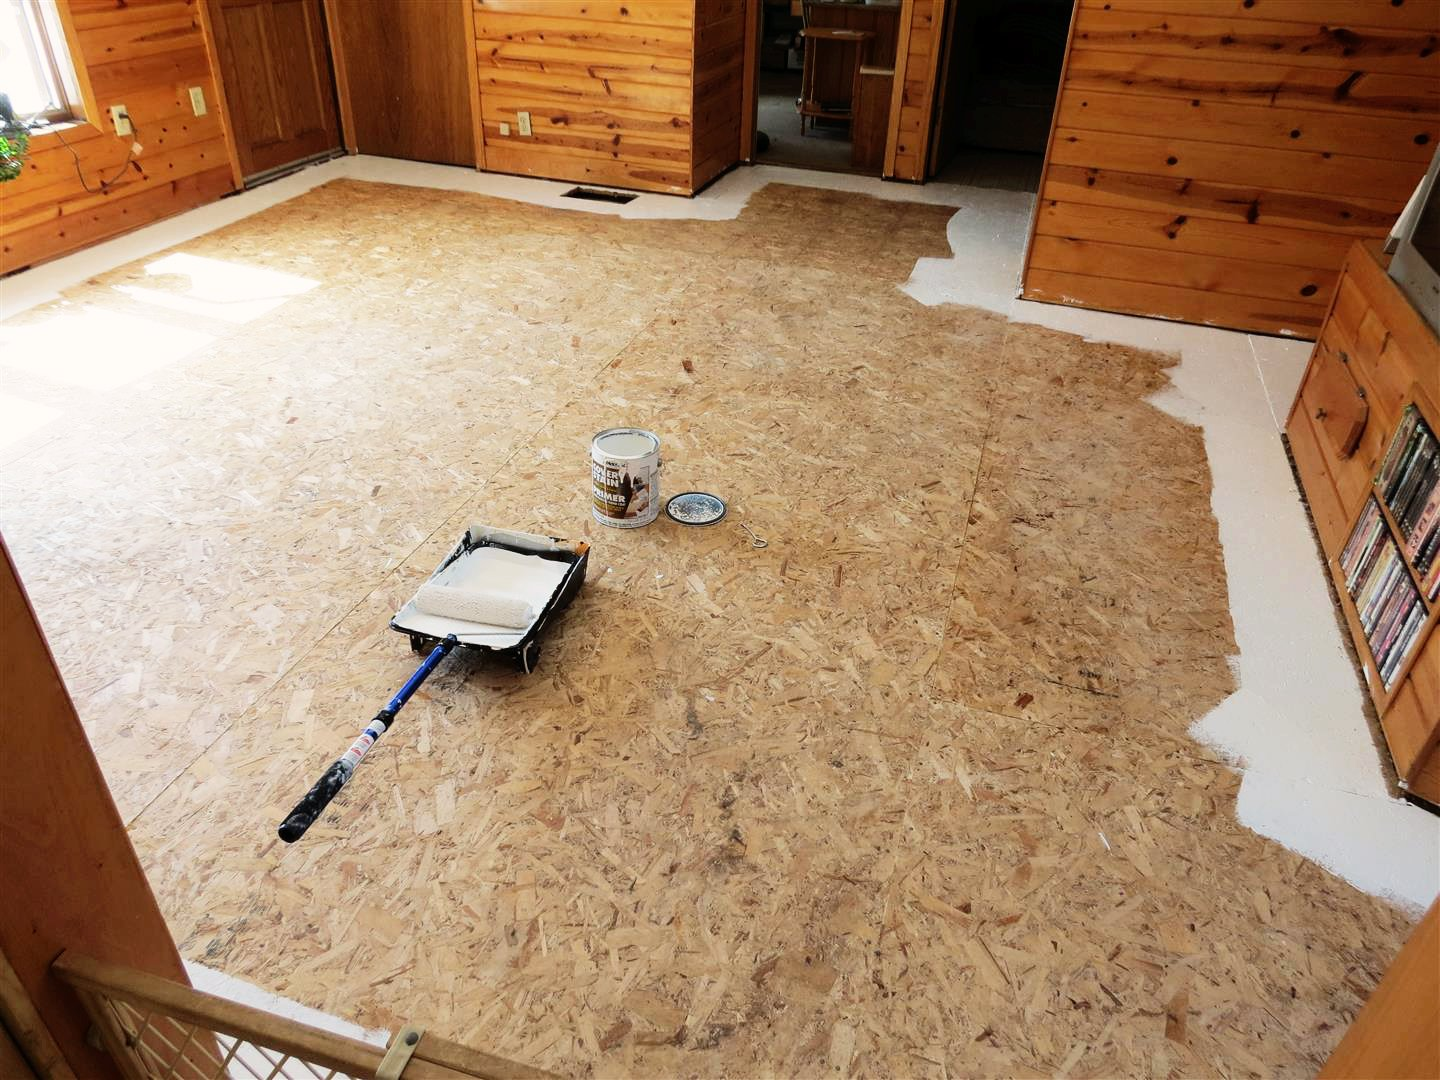 Black spruce hound painted plywood floors revisited for Painting plywood floors ideas